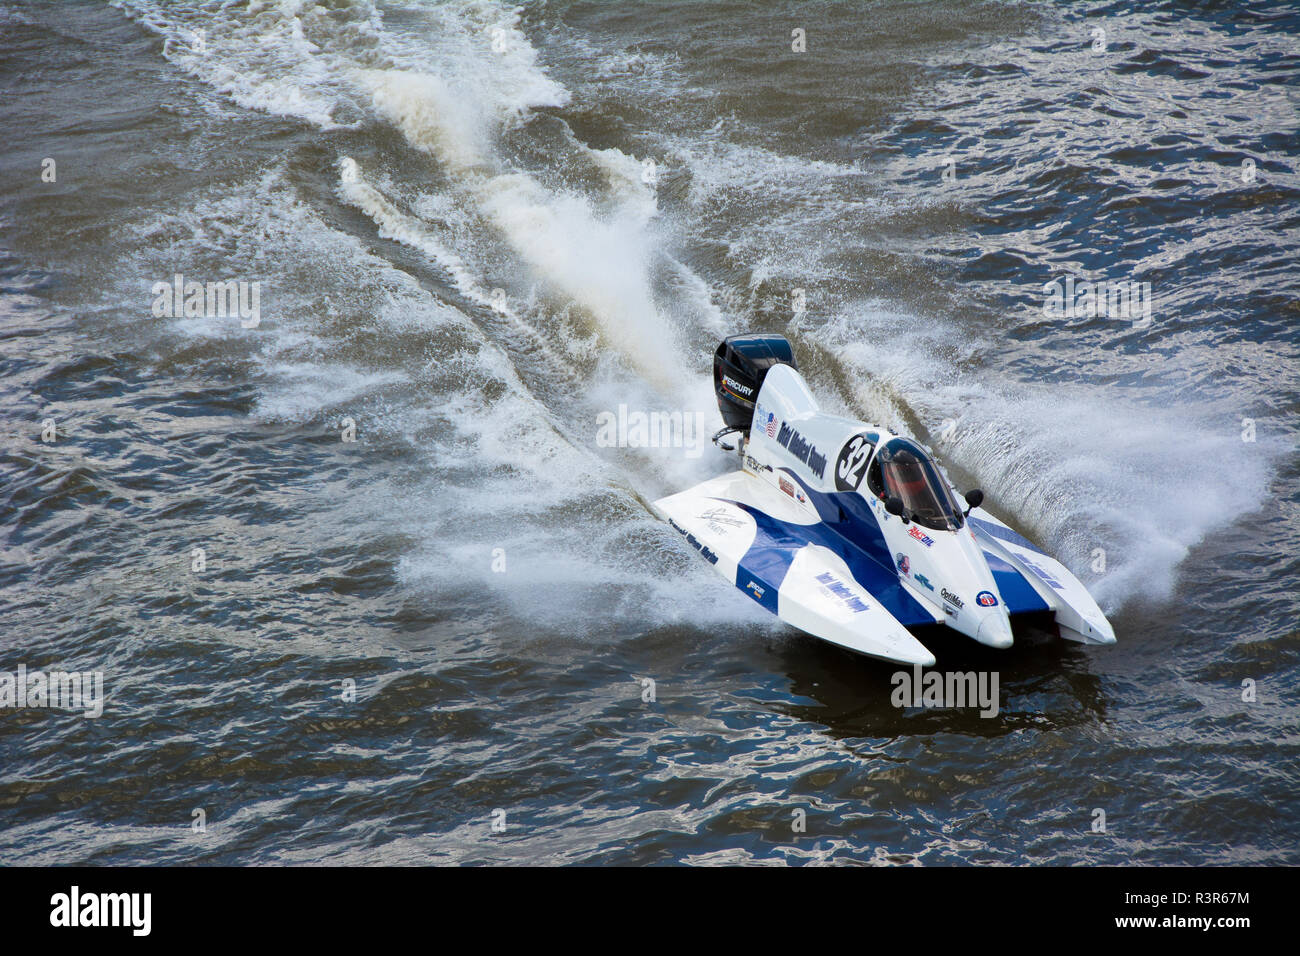 F1 Powerboat Stock Photos & F1 Powerboat Stock Images - Alamy